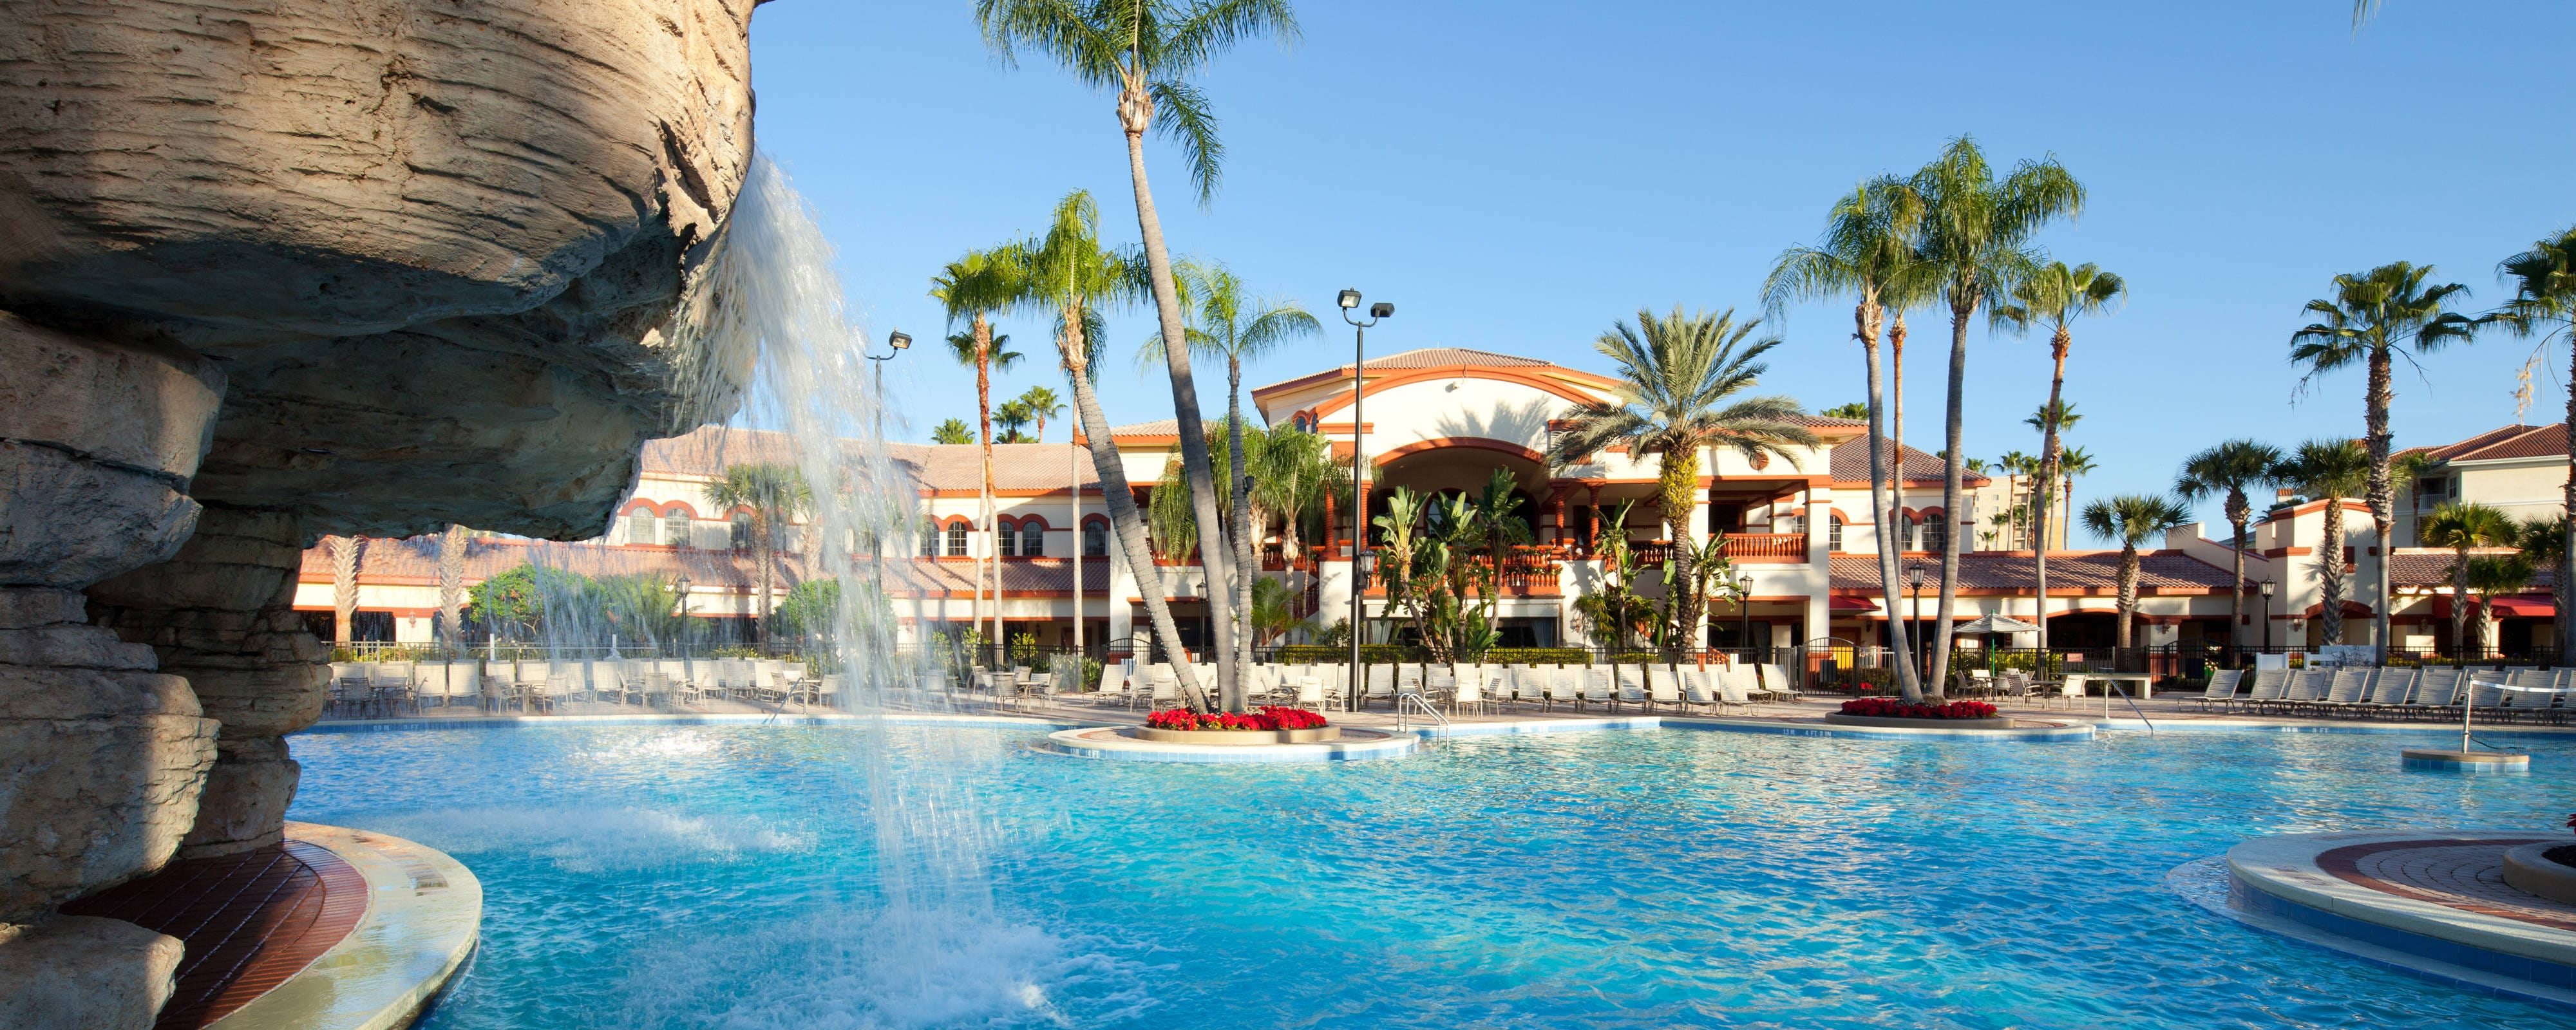 Premium Hotels in Orlando  Sheraton Vistana Villages